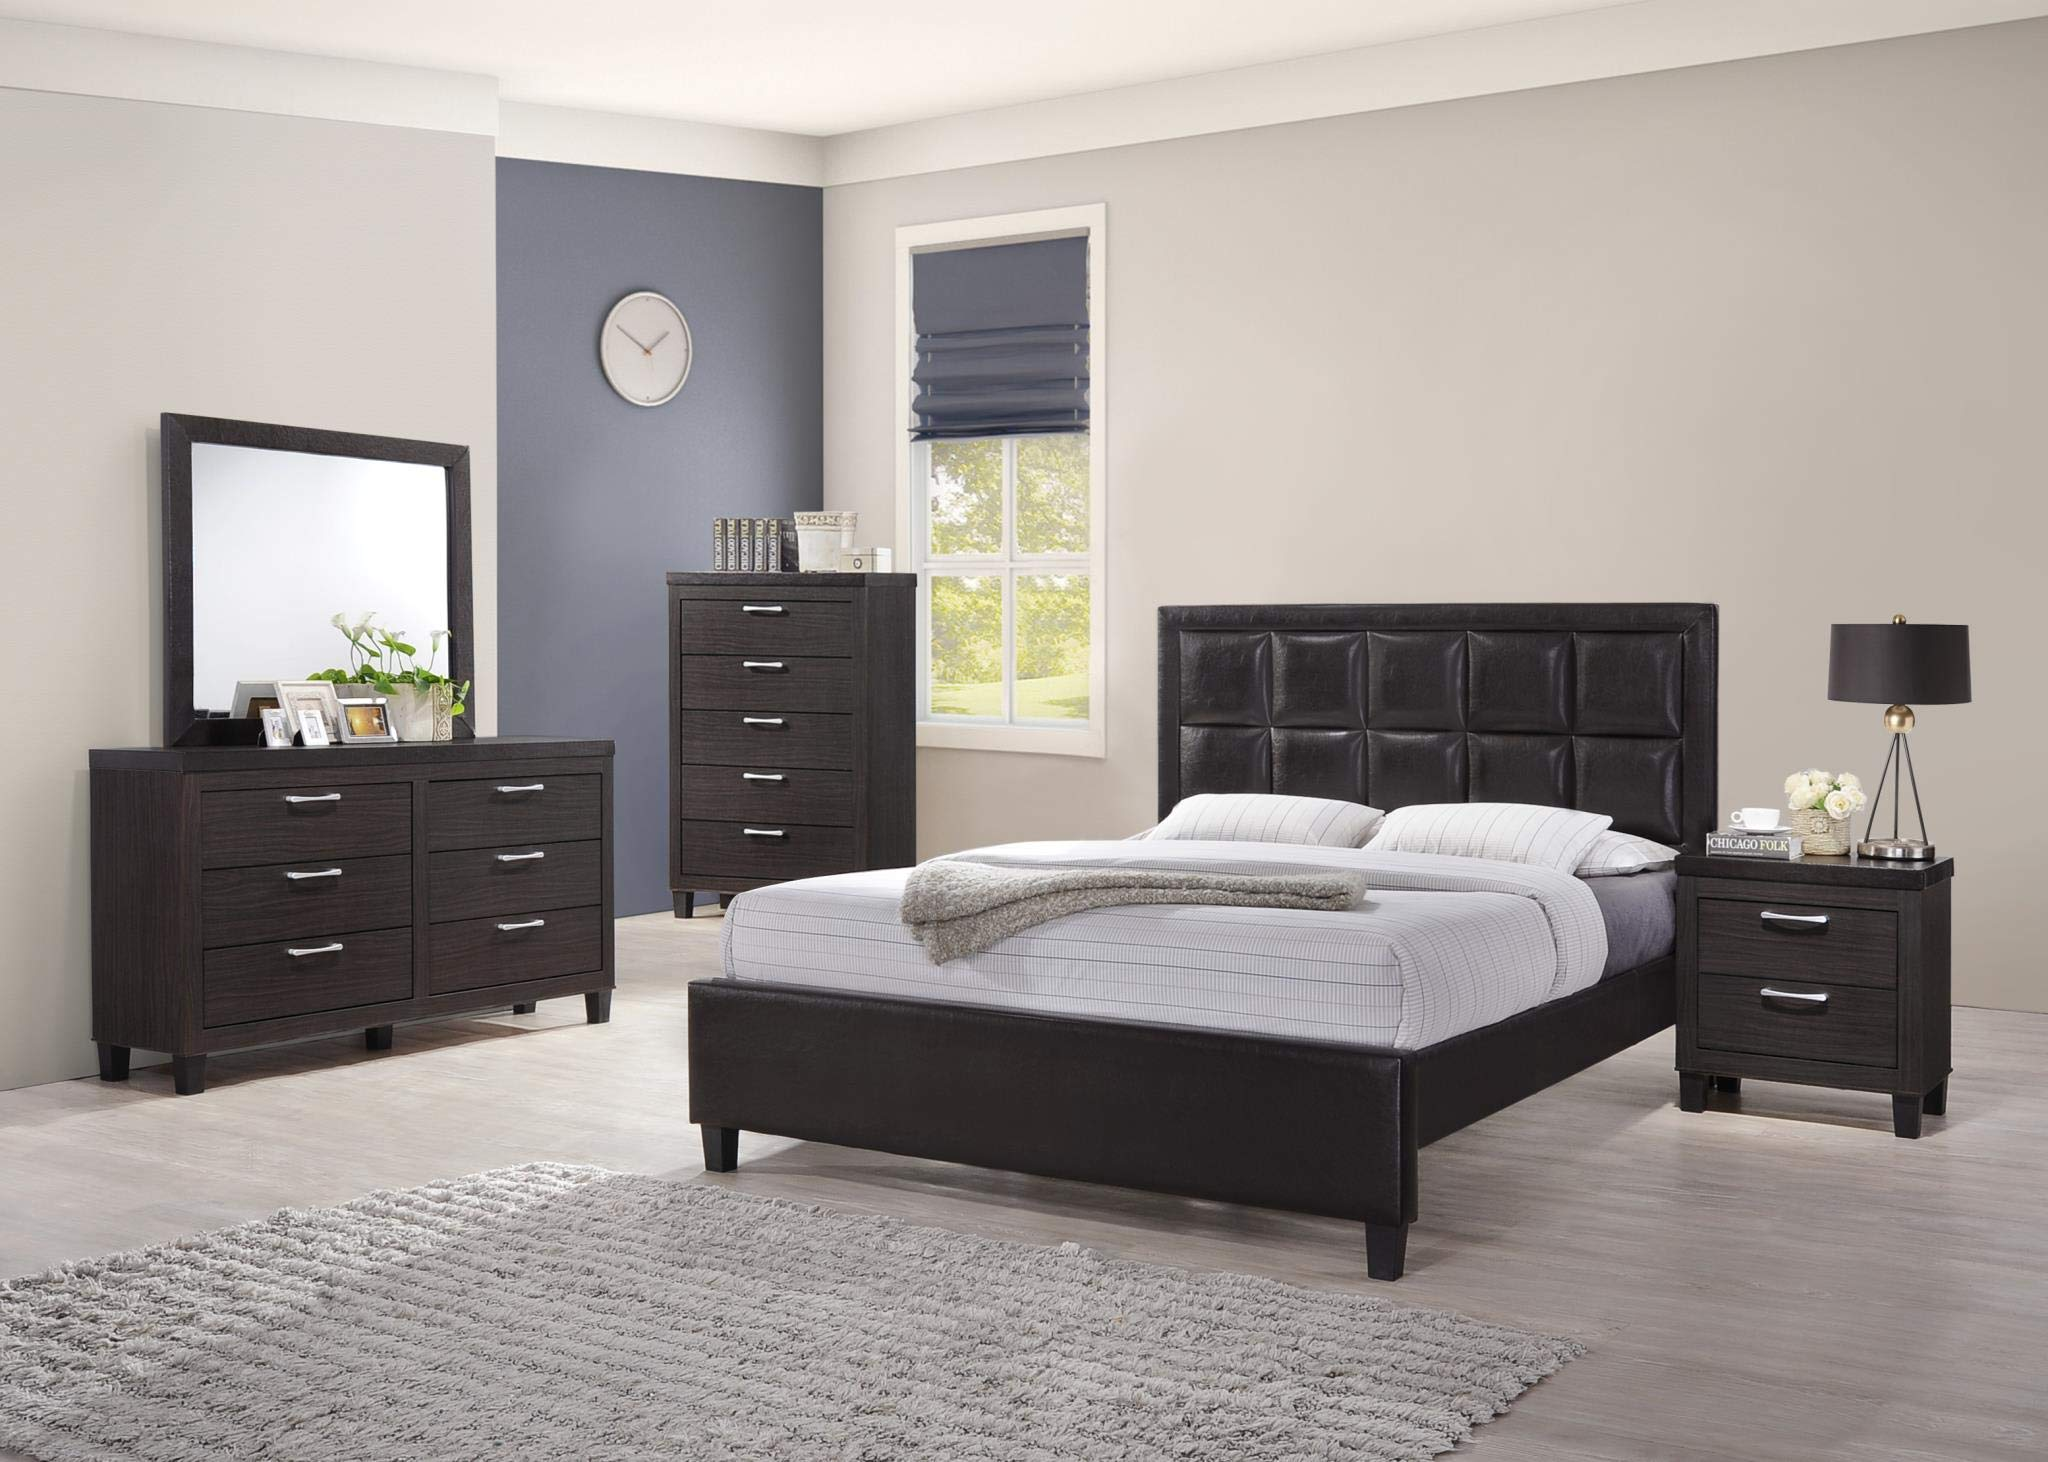 GTU Furniture 5Pc Queen Wood Storage Bedroom Set (Bed + Night Stand + Mirror + Dresser + Chest, Queen) (5Pc-Bed+Night Stand+Mirror+Dresser+Chest) by GTU Furniture